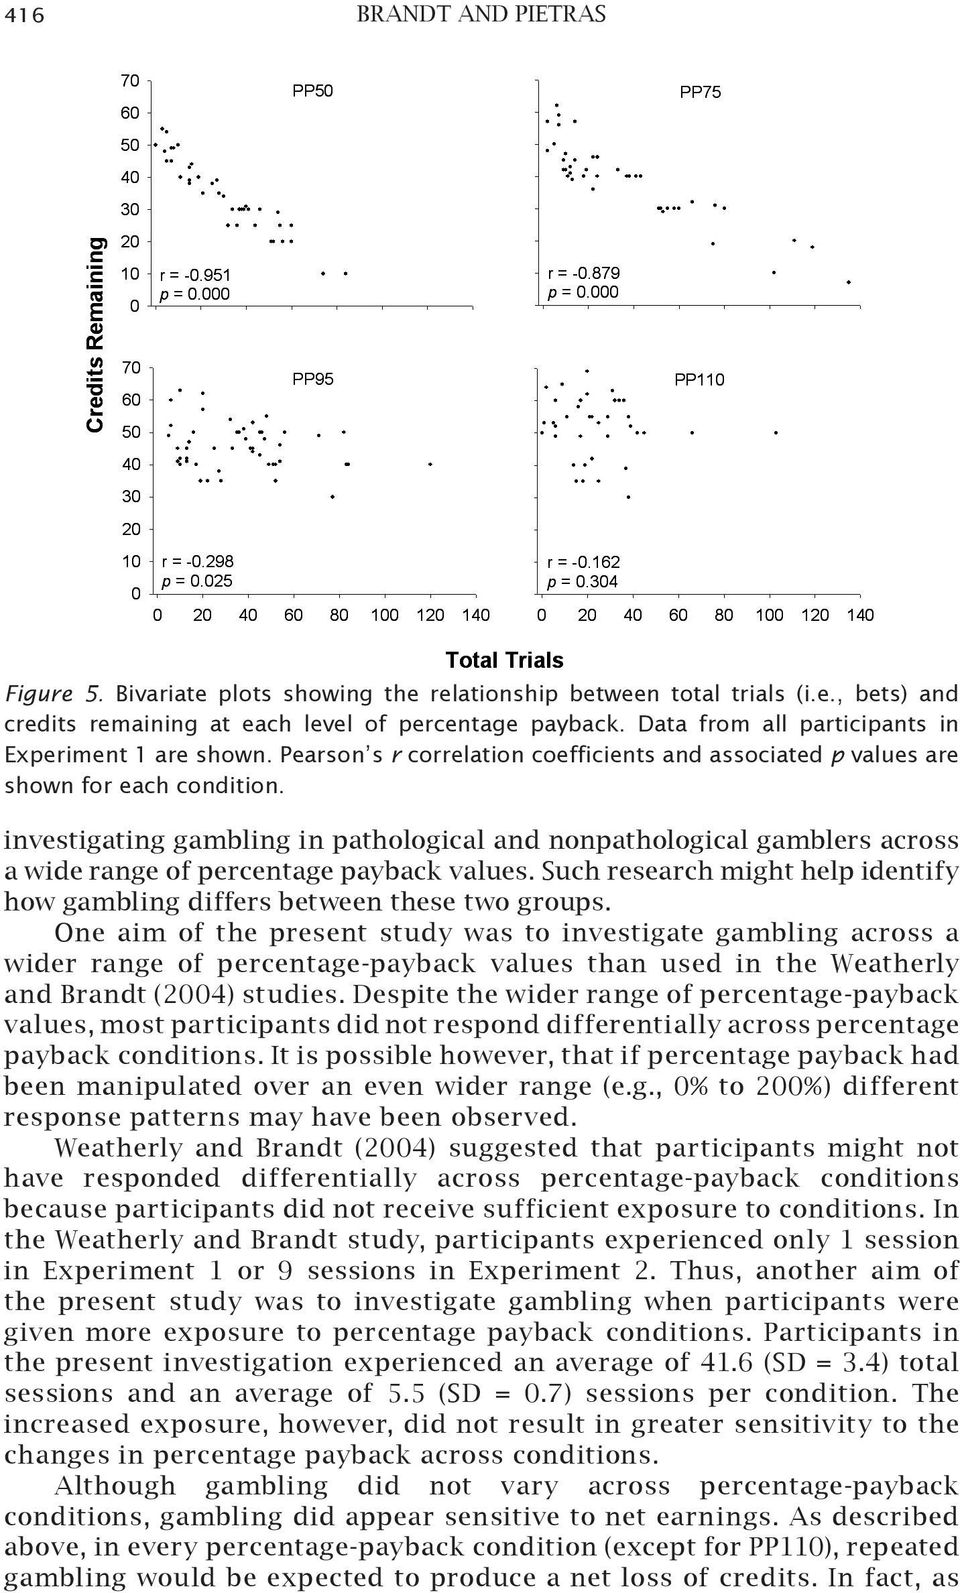 investigating gambling in pathological and nonpathological gamblers across a wide range of percentage payback values. Such research might help identify how gambling differs between these two groups.